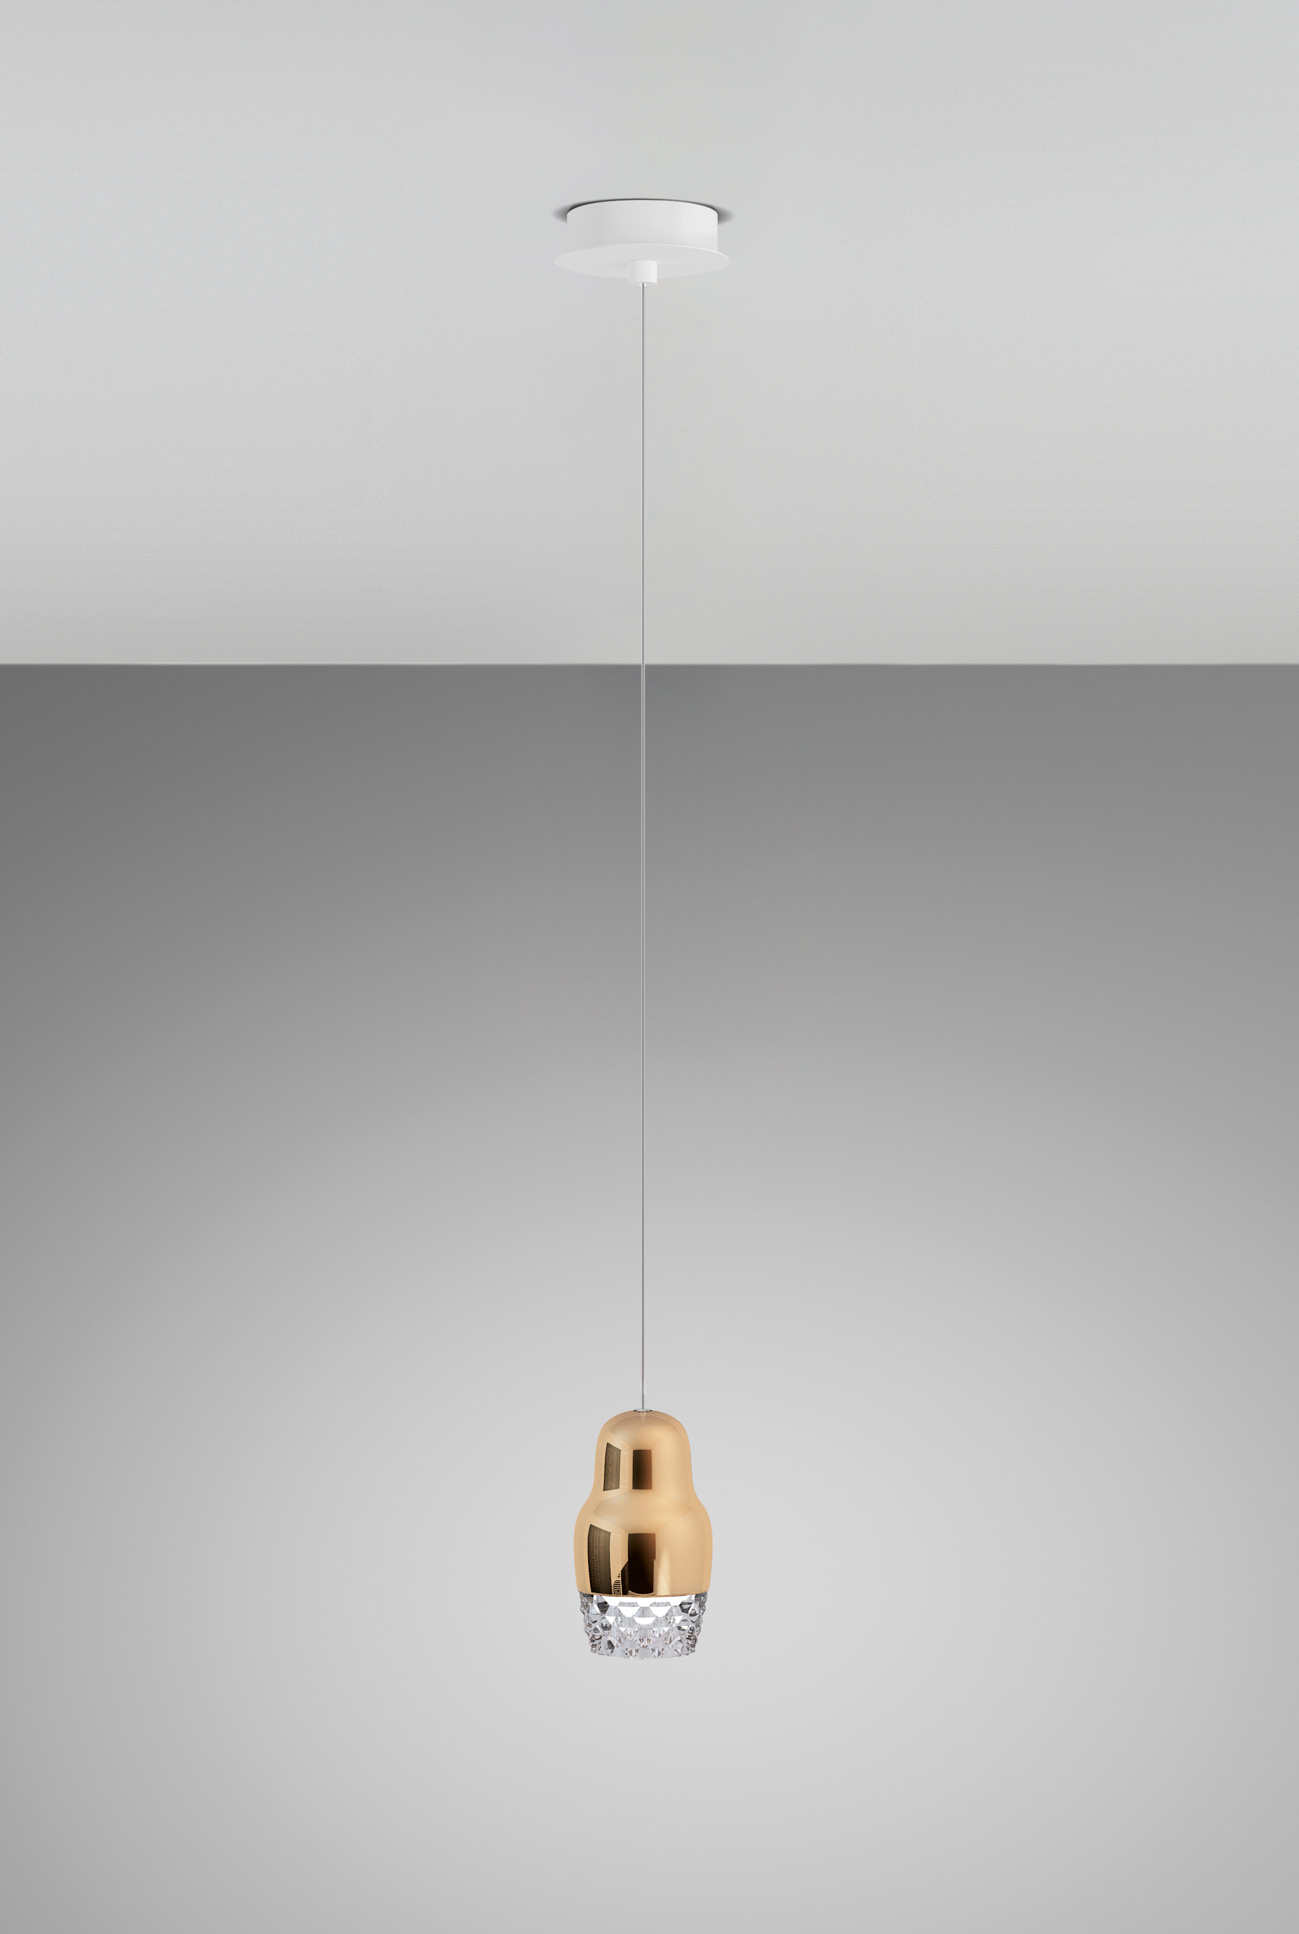 Fedora Hanging Lamp by Dima Loginoff for Axo Light